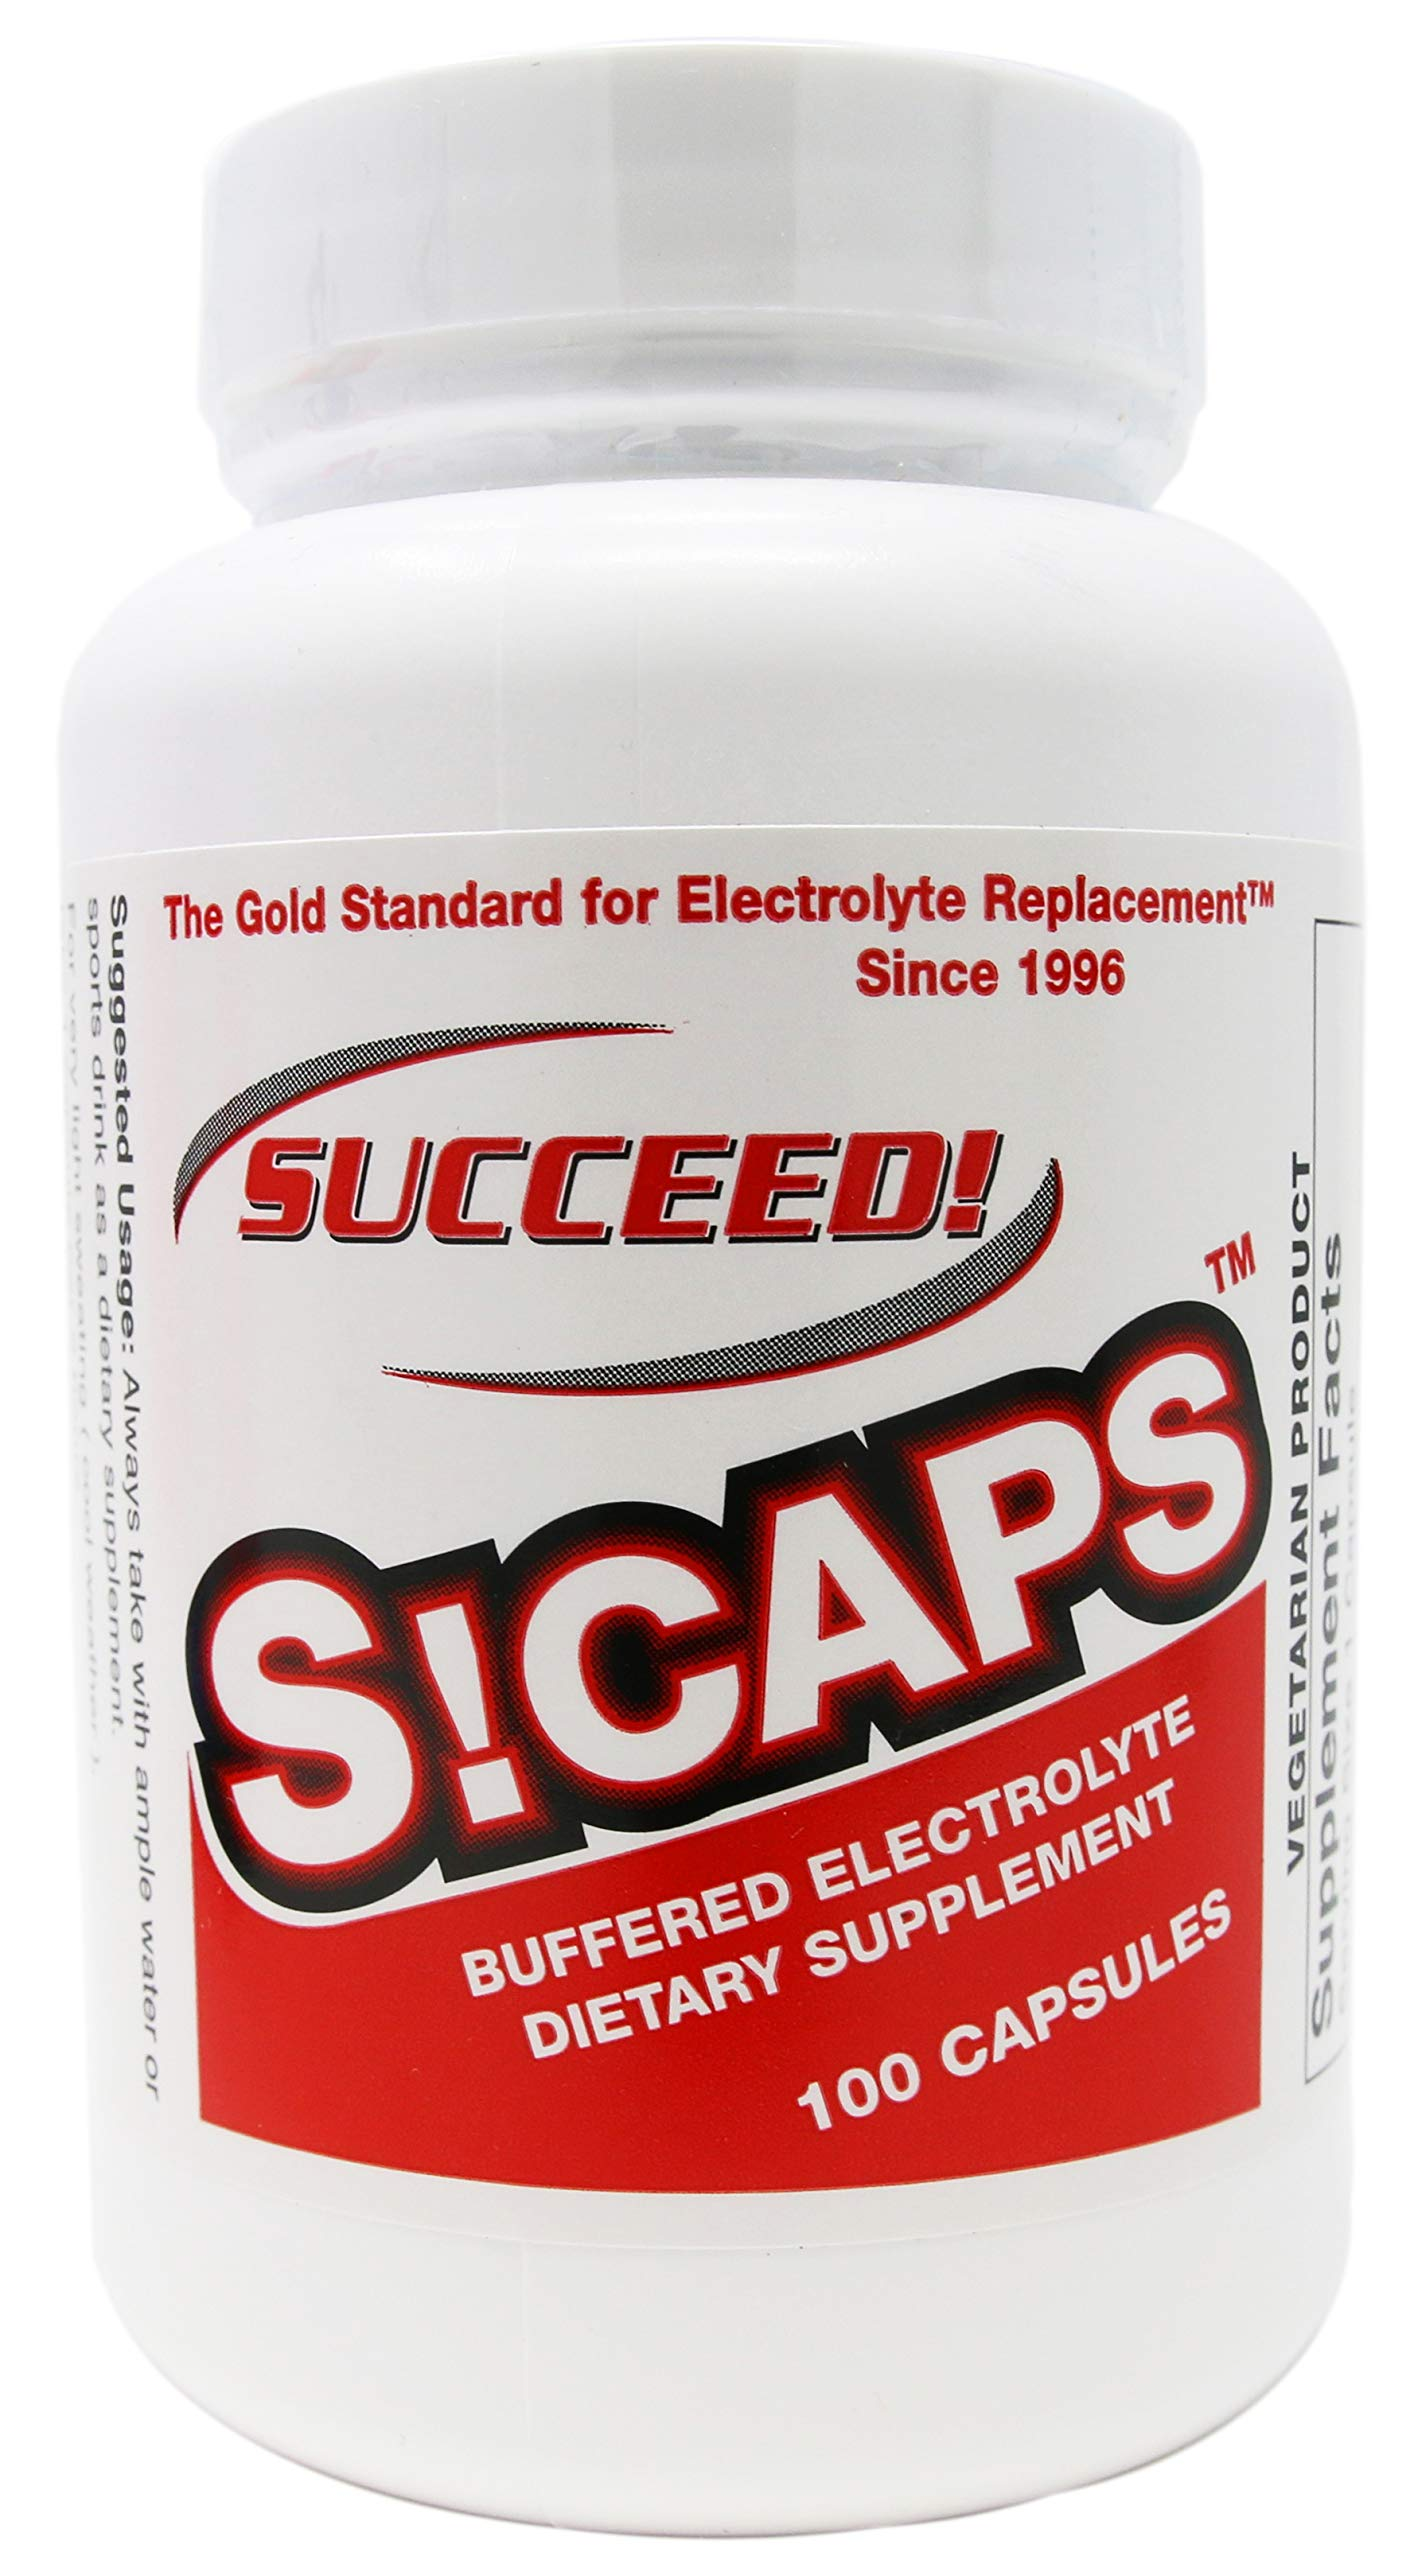 SUCCEED S Caps,100 capsules by Succeed!